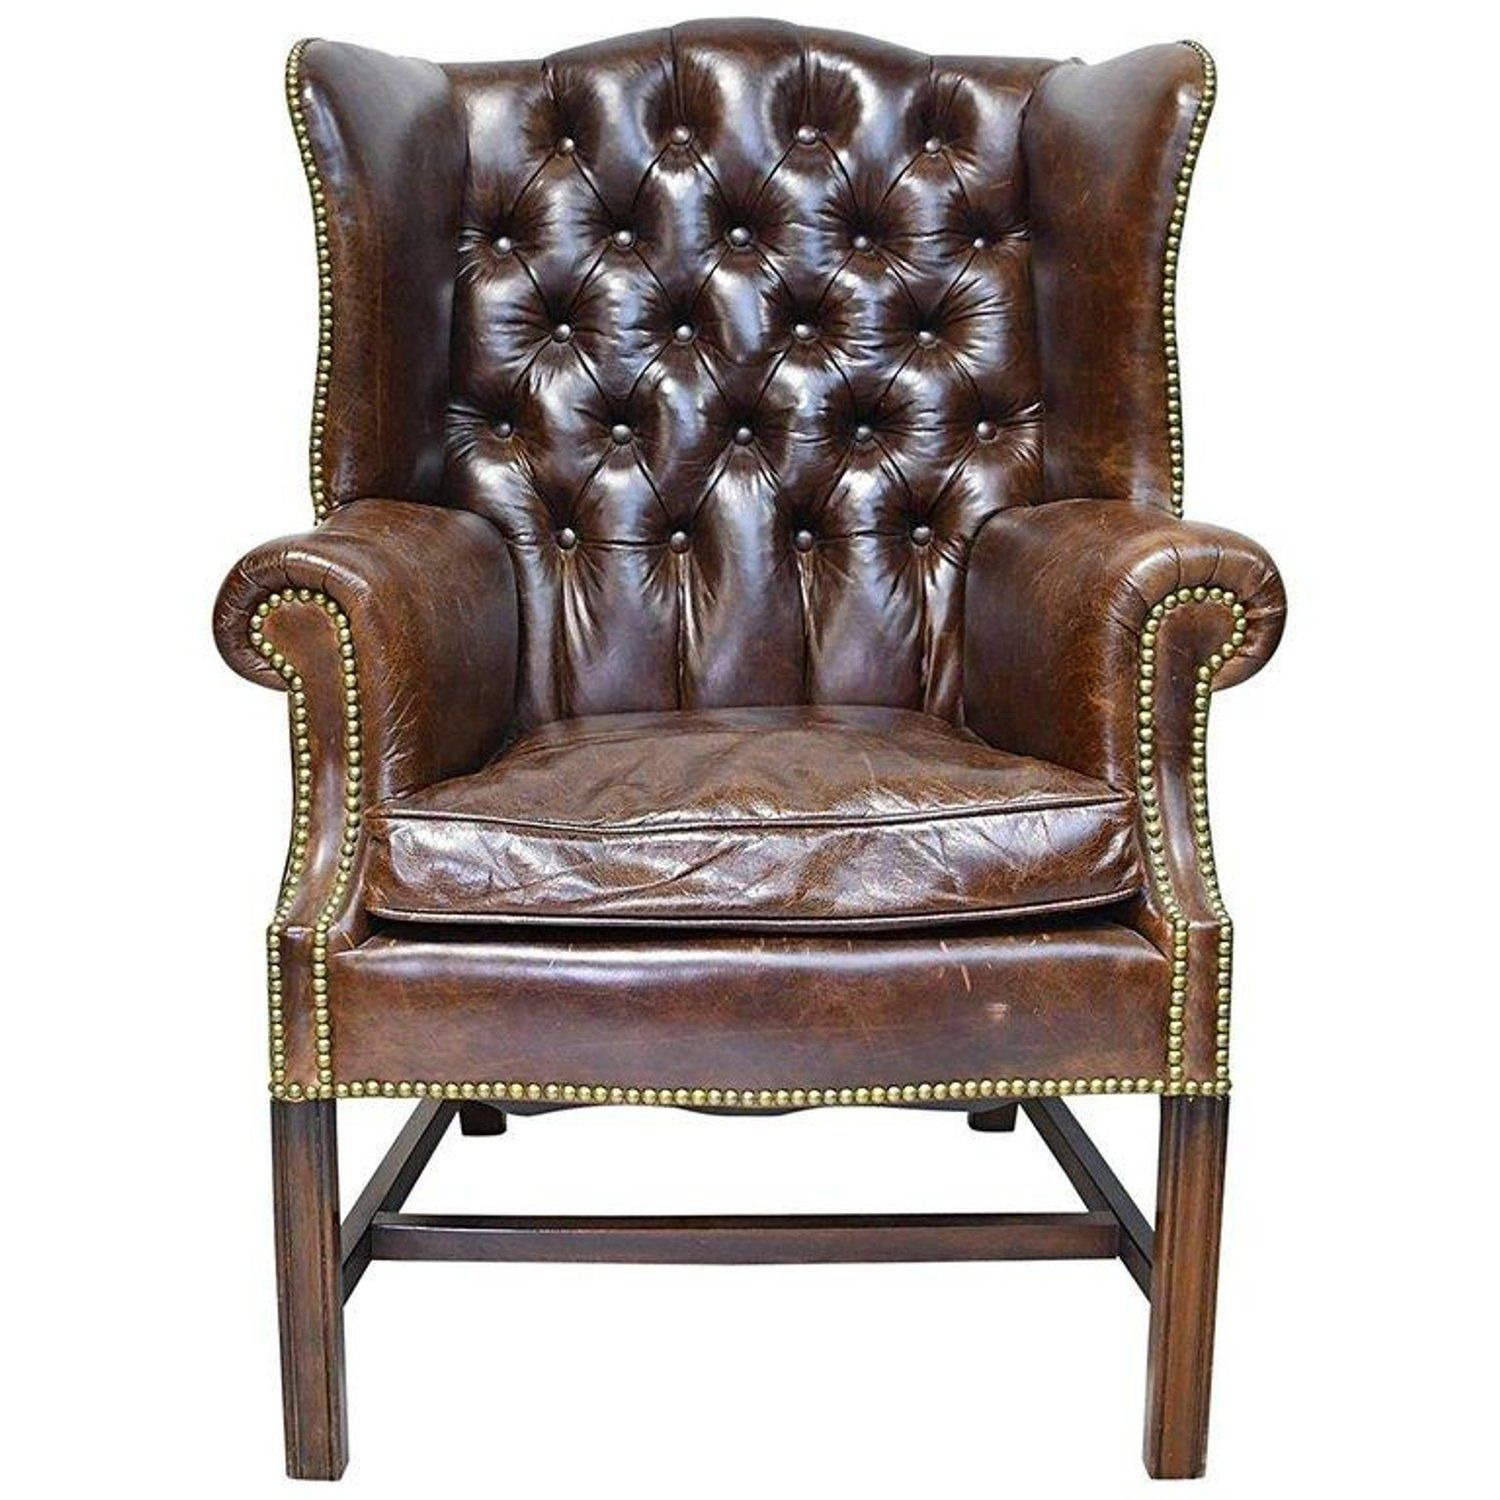 Vintage Chesterfield Wing Back Chair With Tufted Brown Leather